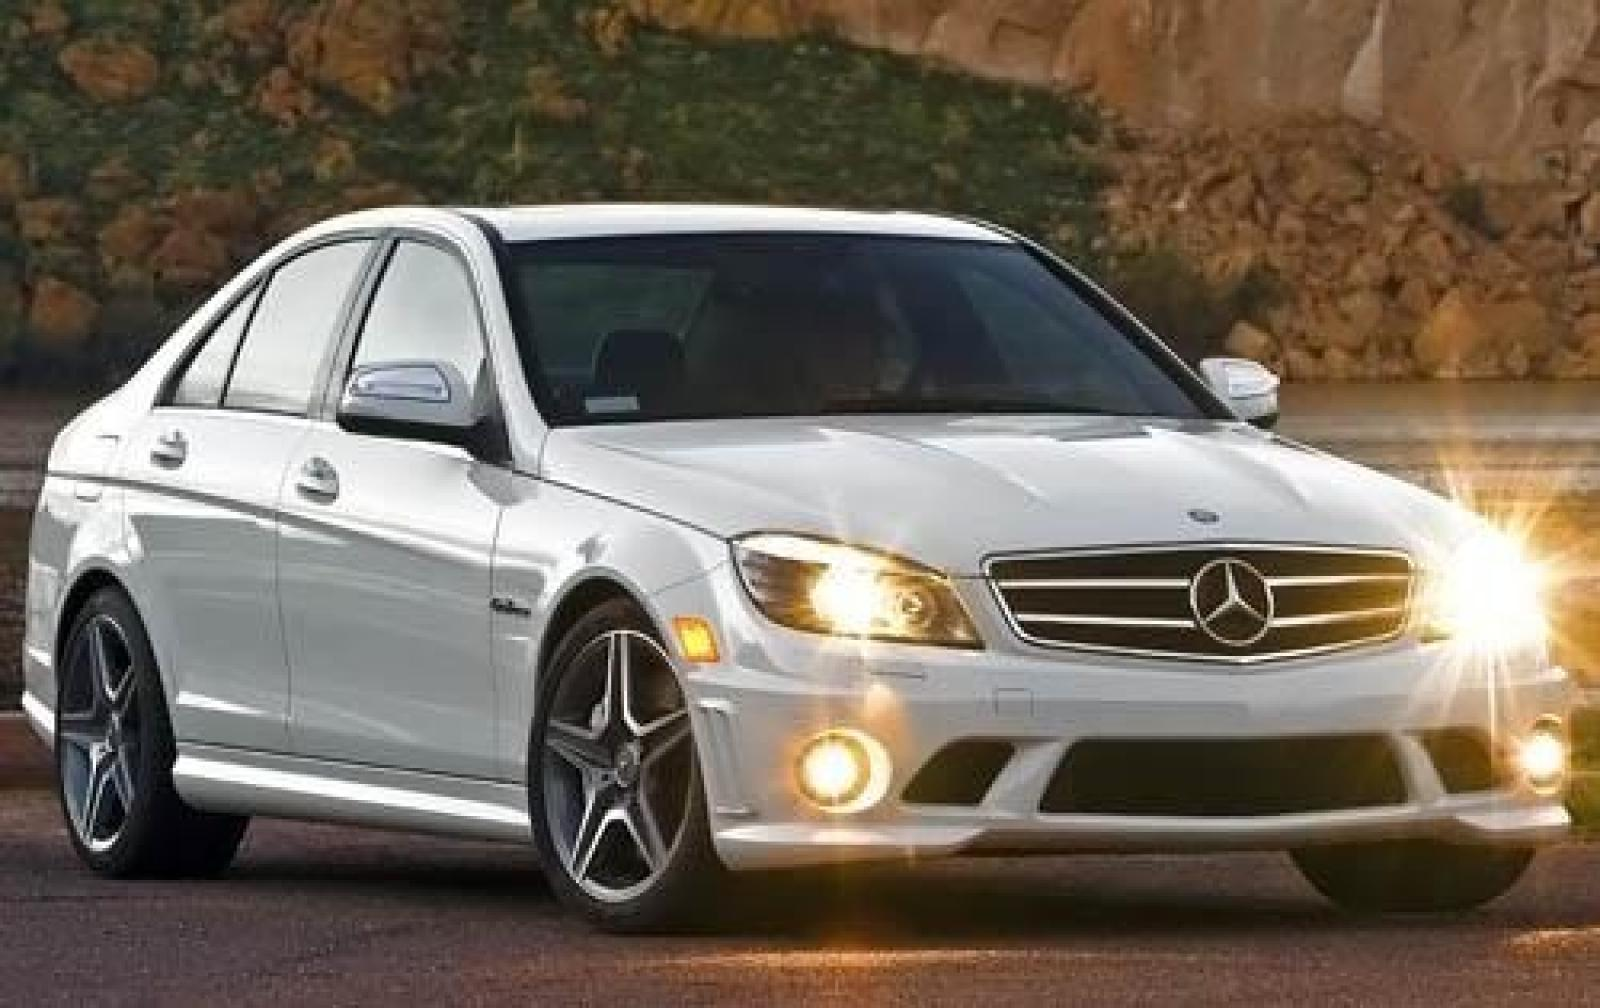 2010 mercedes benz c class information and photos zombiedrive. Black Bedroom Furniture Sets. Home Design Ideas